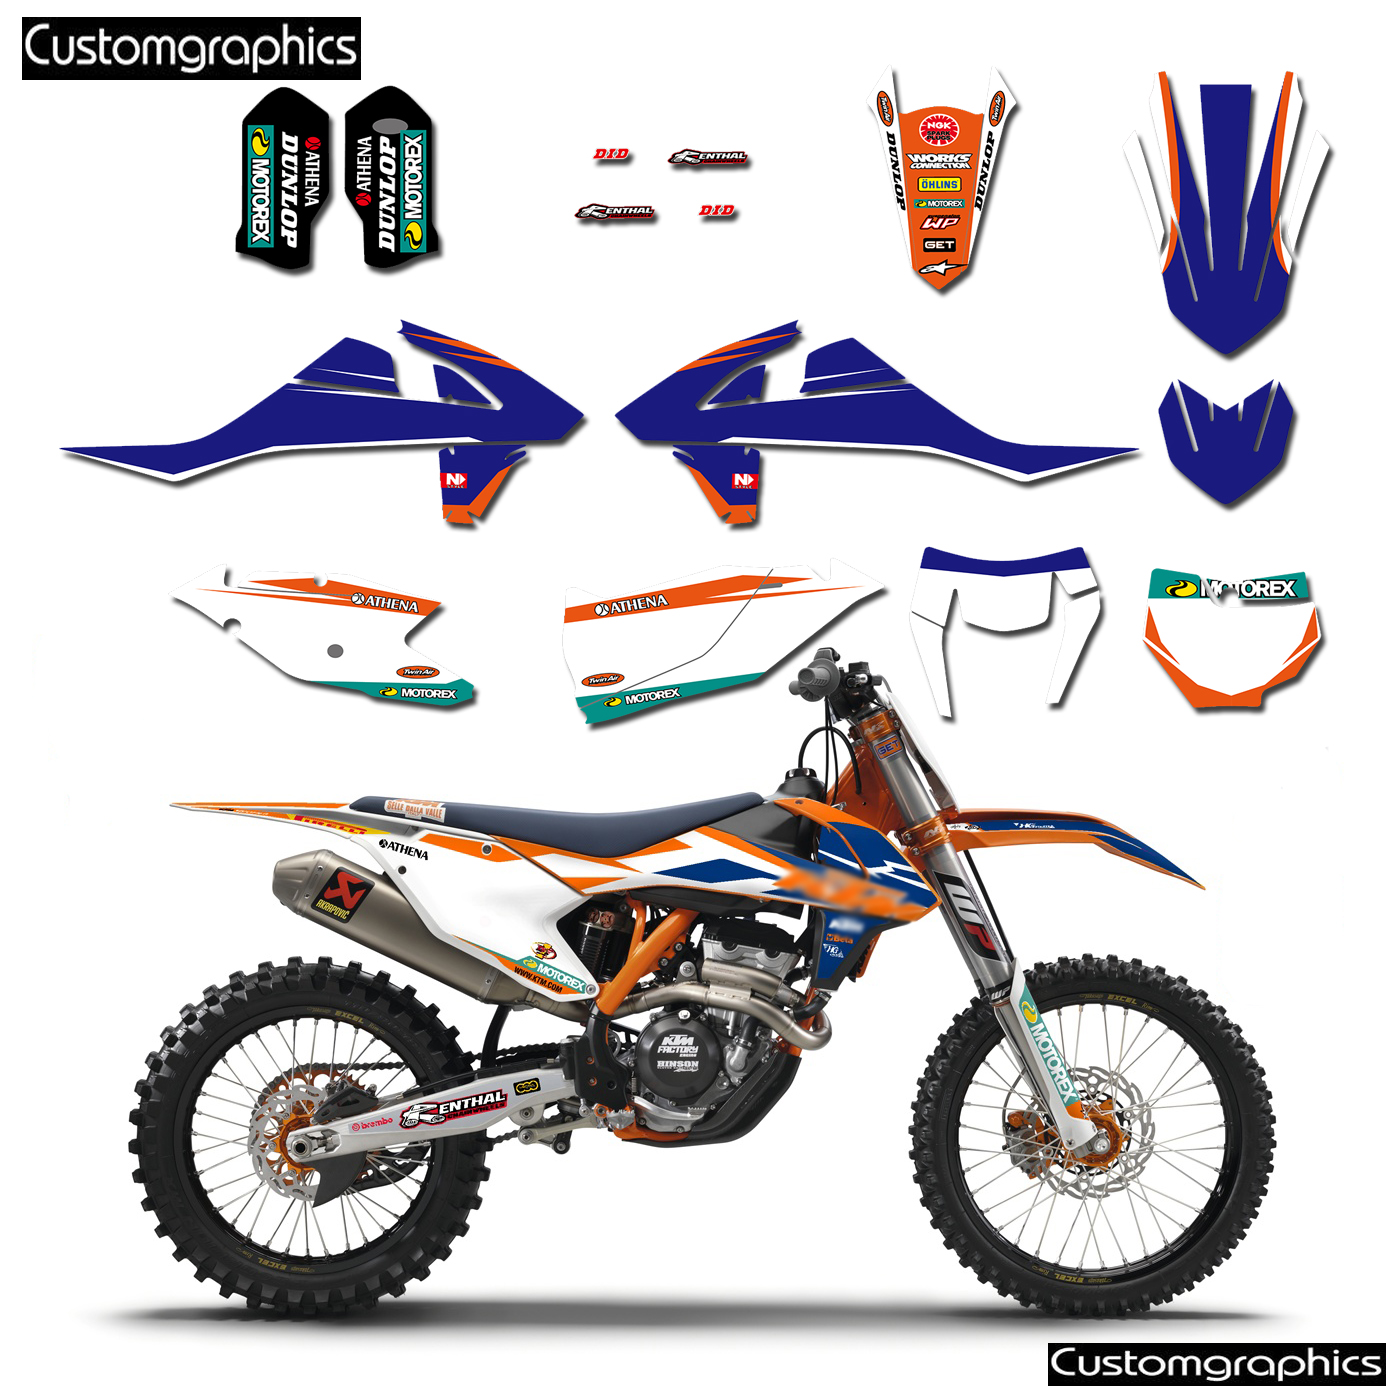 Custom graphics sticker decals kit number plate backgrounds for ktm 50 65 85 125 200 250 300 350 450 500 exc sx sxf xcw xc